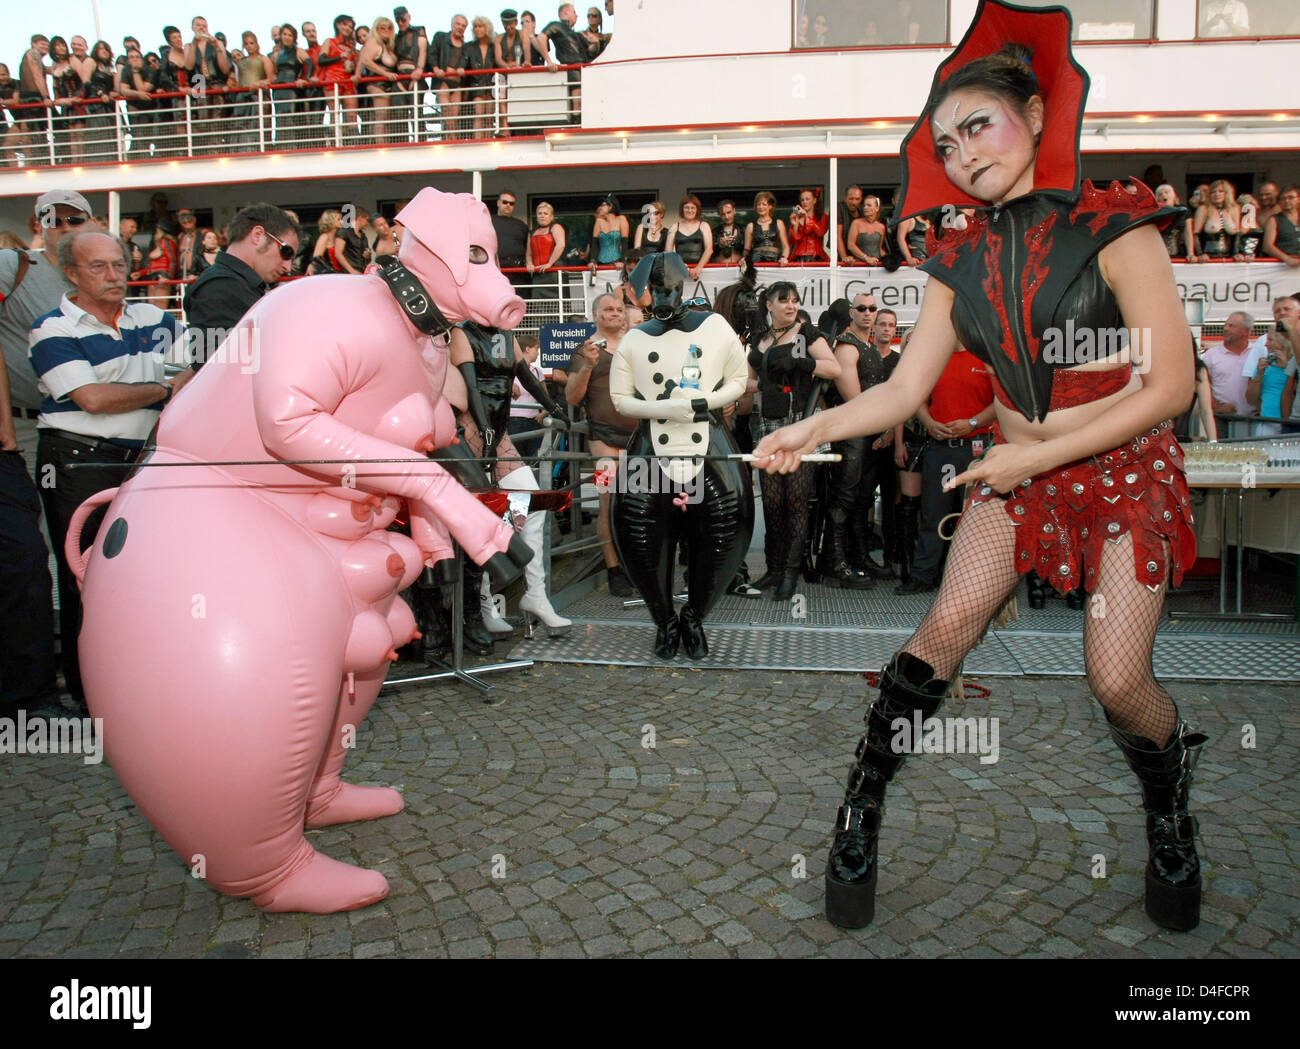 Hundreds Of Sado Maso People Watch Persons Dressed As Submissive Pig Stock Photo Alamy